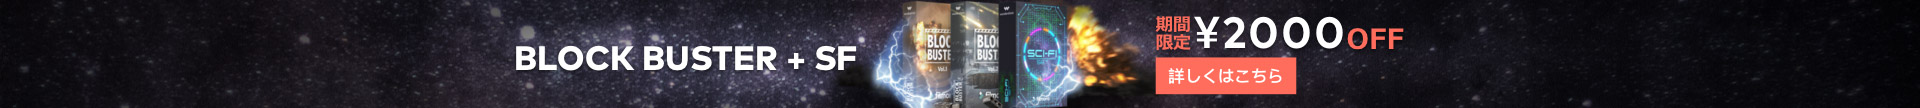 BLOCK BUSTER VOL.1&2 + SF 期間限定セールでお得に!